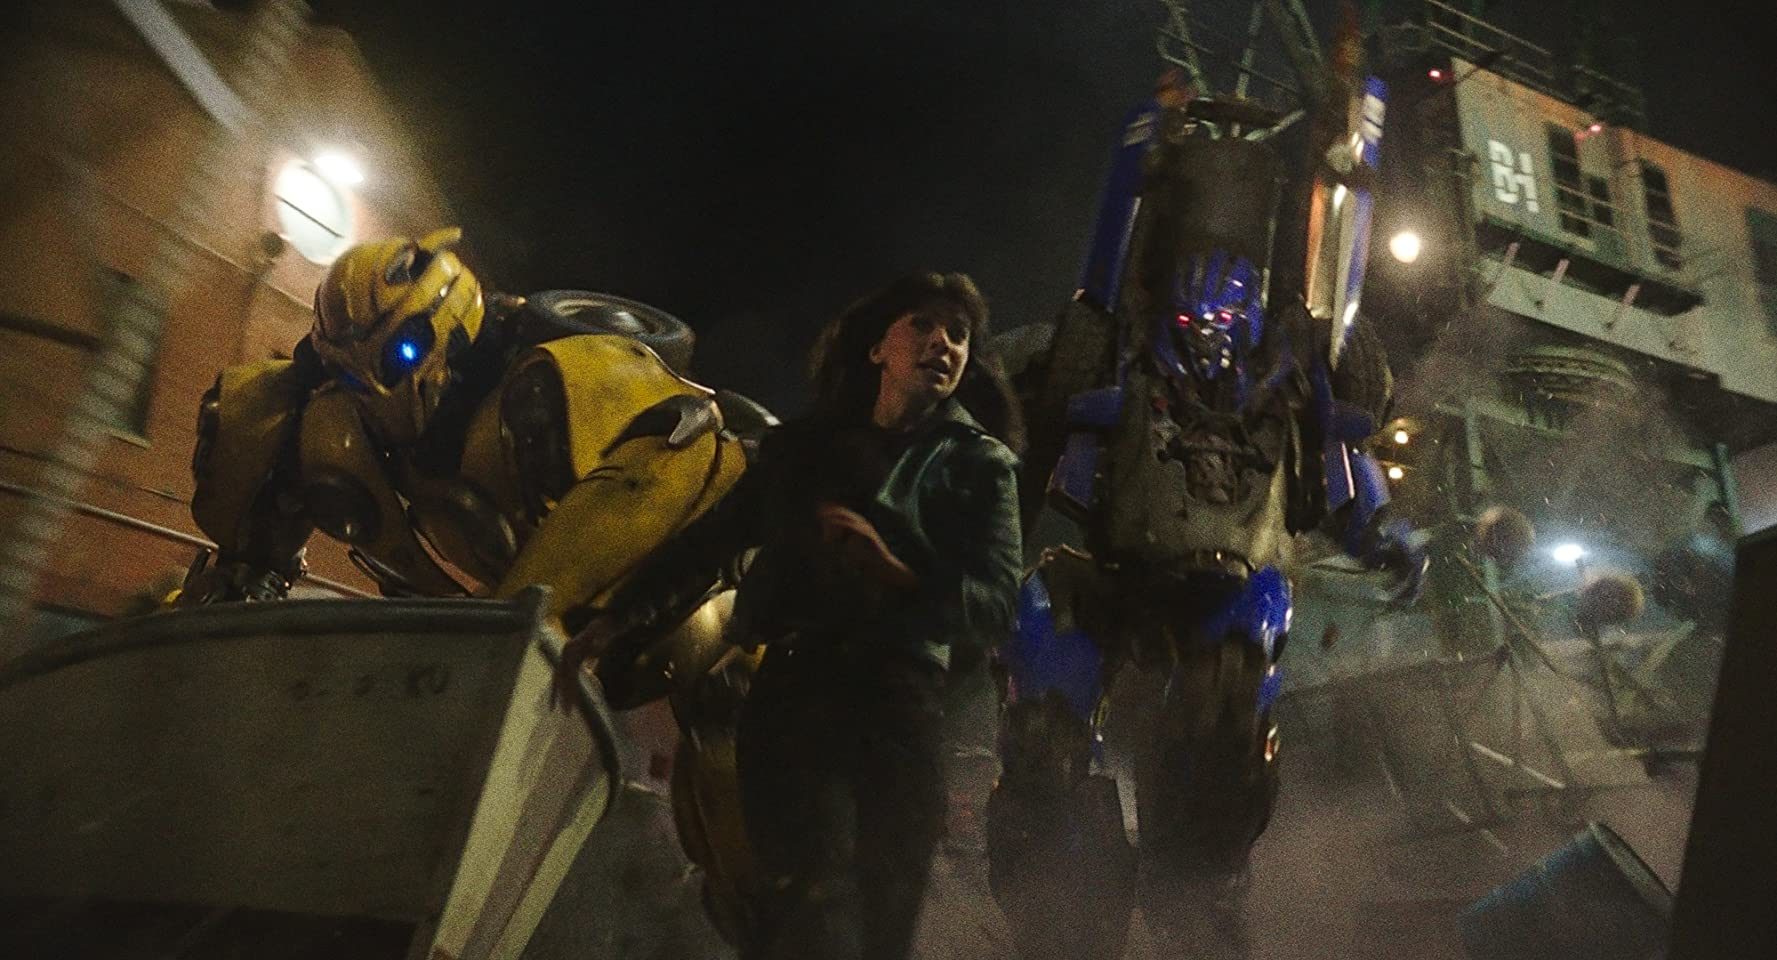 Justin Theroux, Hailee Steinfeld, and Dylan O'Brien in Bumblebee (2018)